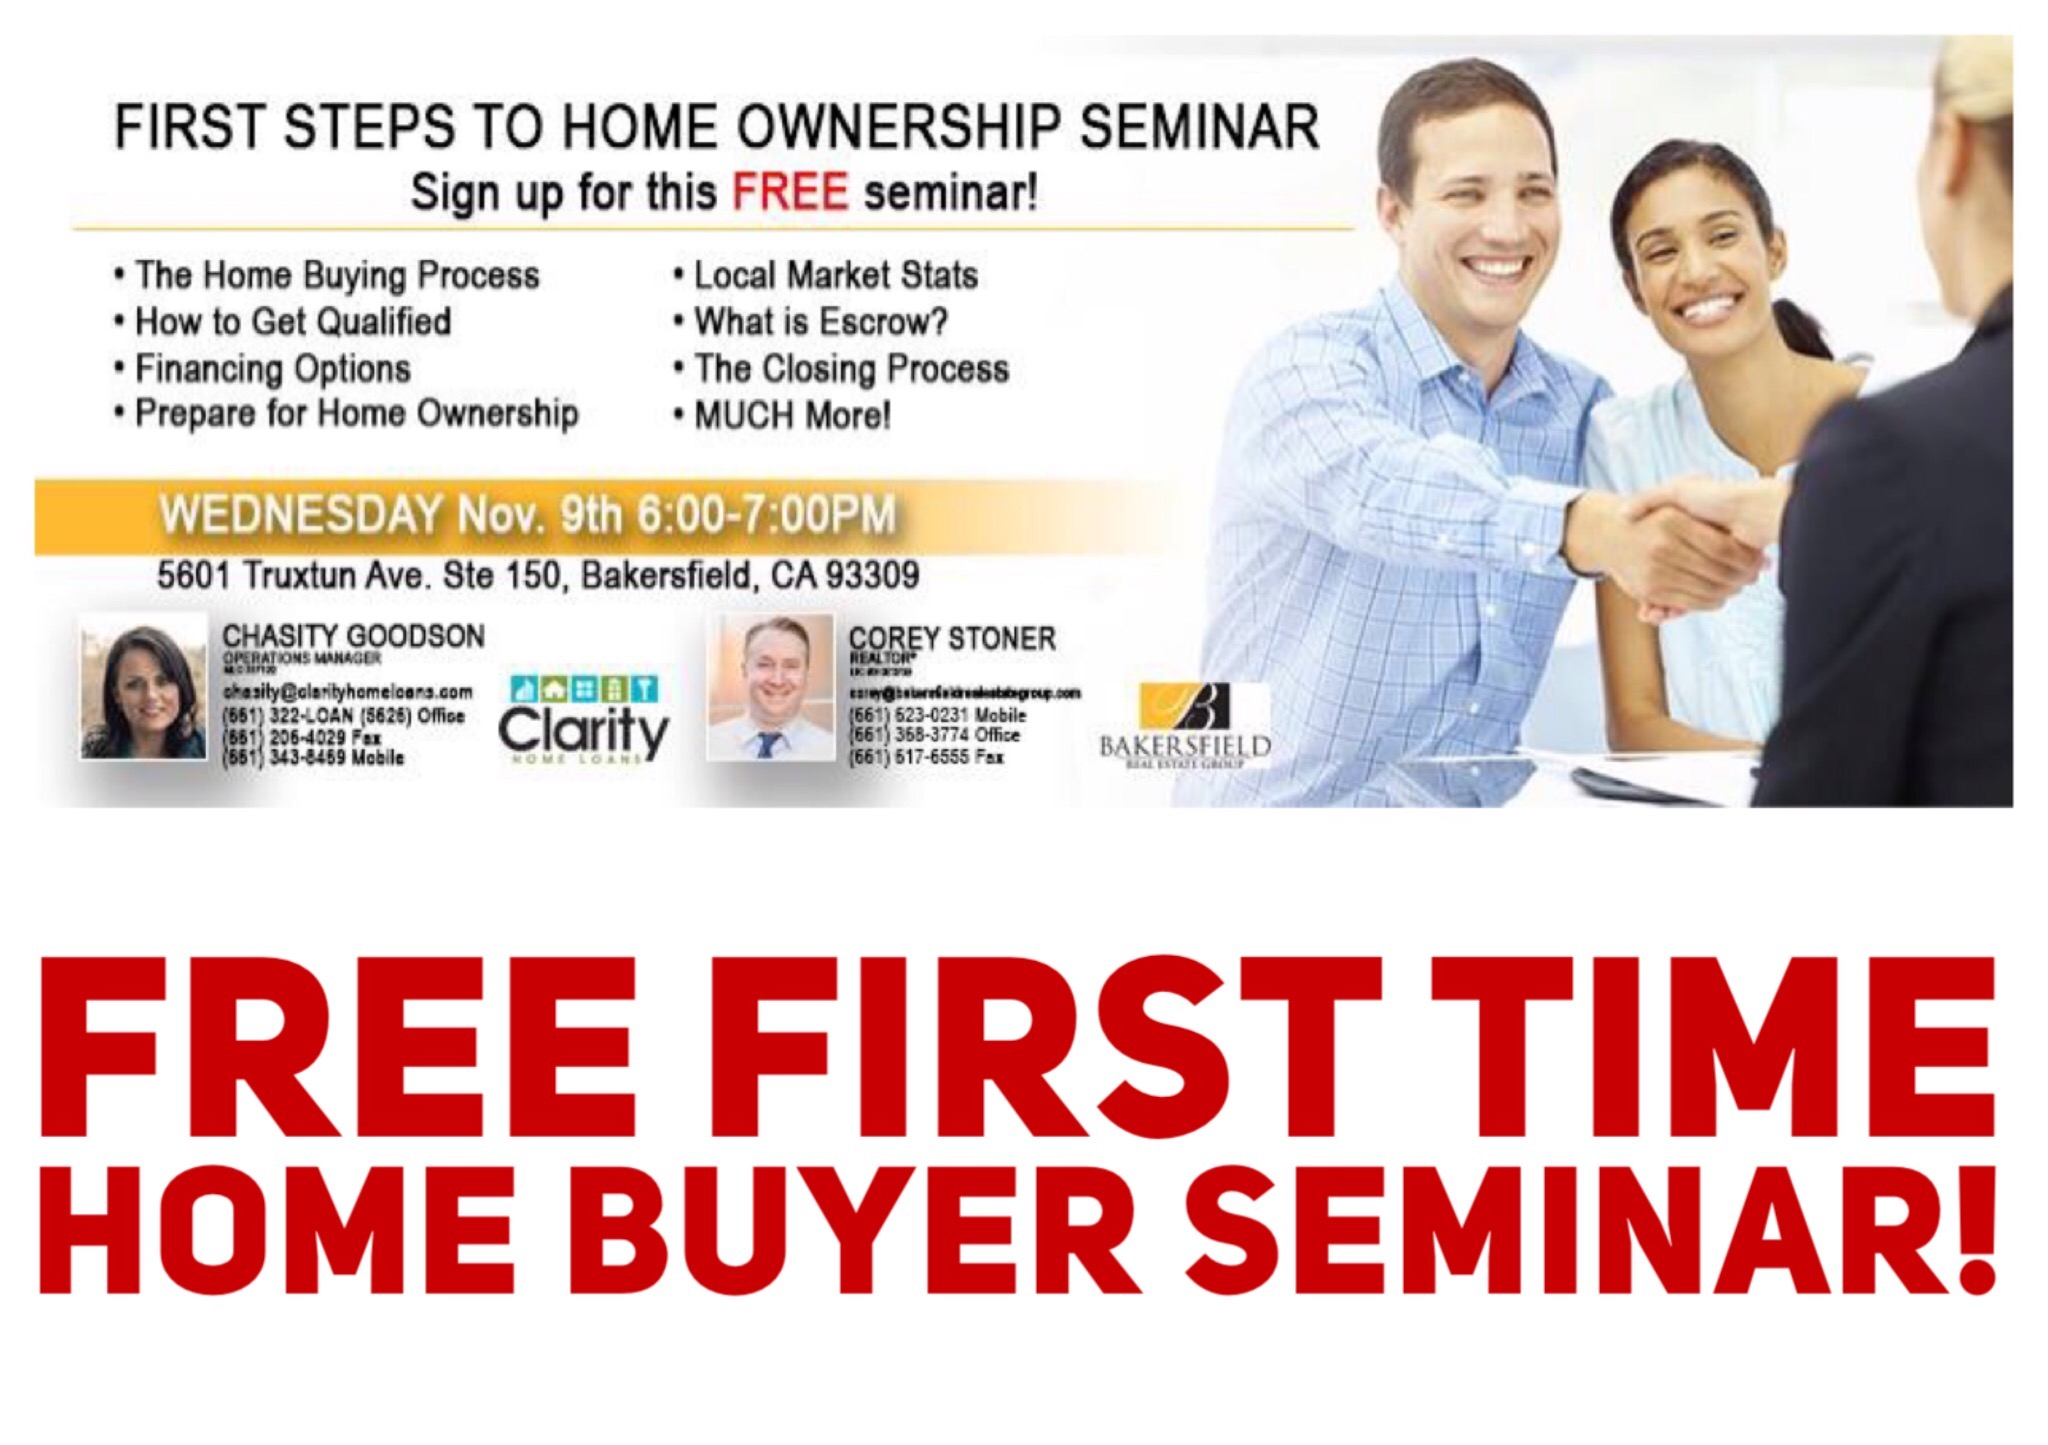 Bakersfield Real Estate Experts - FREE Home Buyers Seminar 661-704-4244